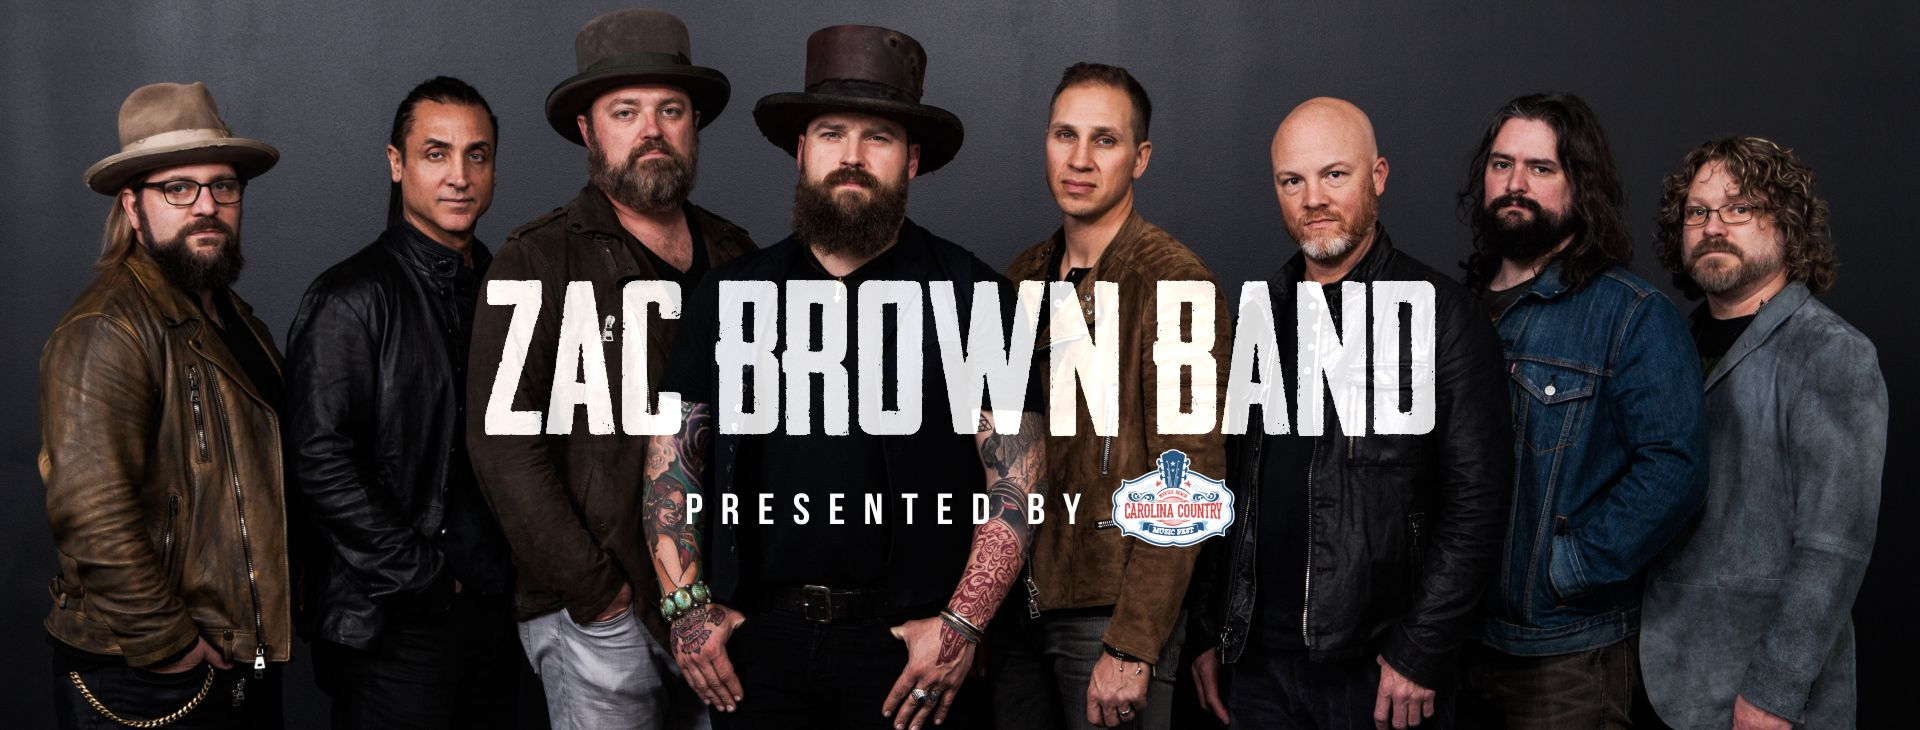 Zac Brown Band to Perform at Carolina Country Music Fest